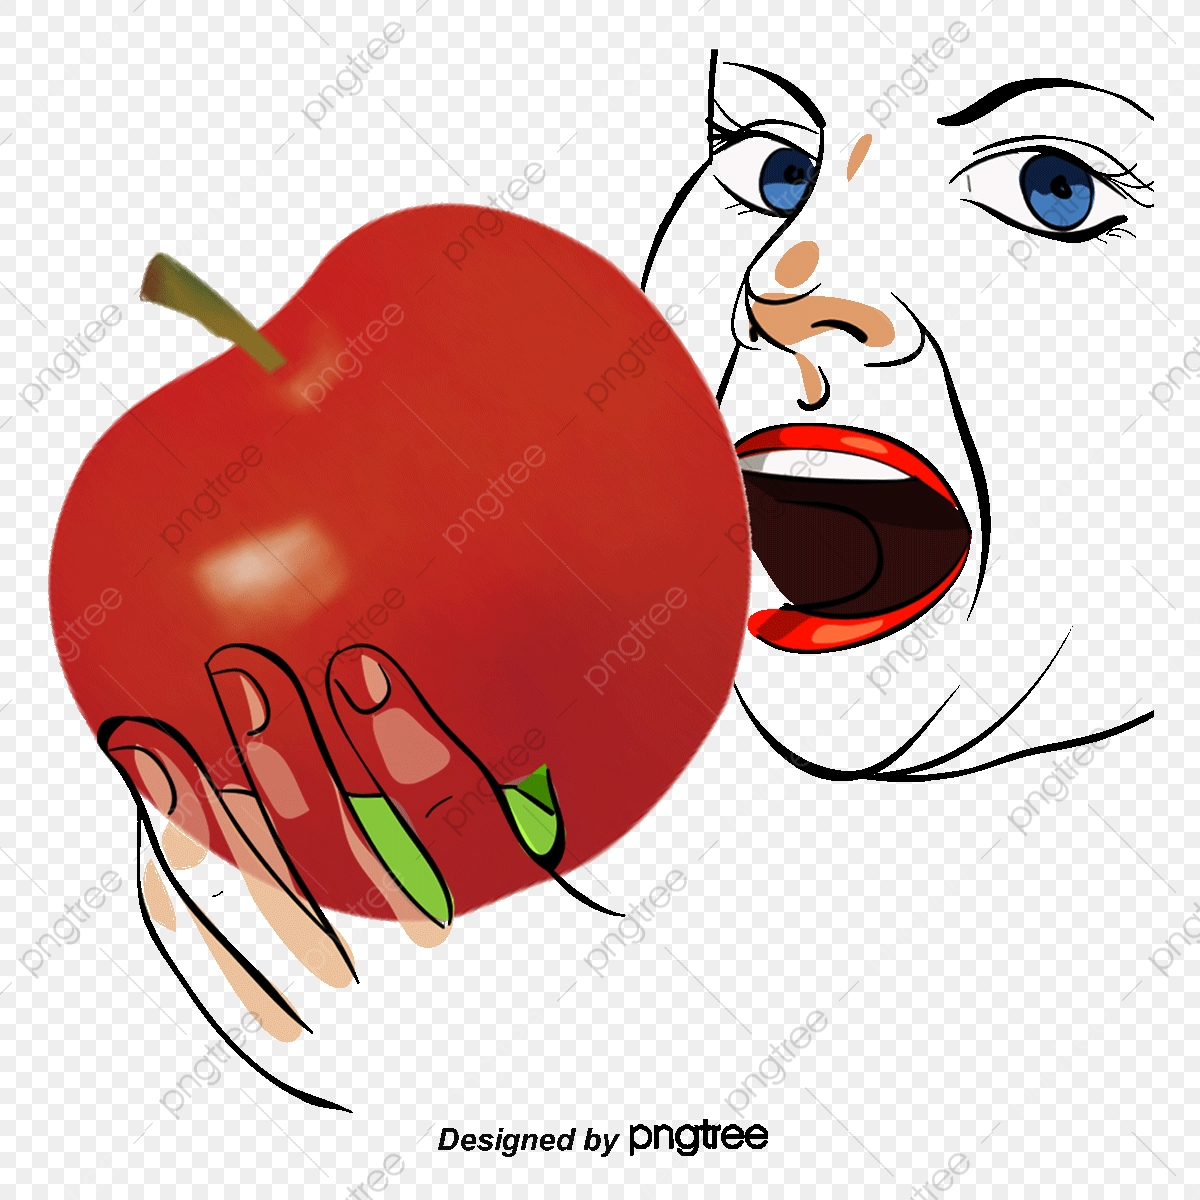 Dental Health Eating Apple, Health Clipart, Apple, Health PNG.